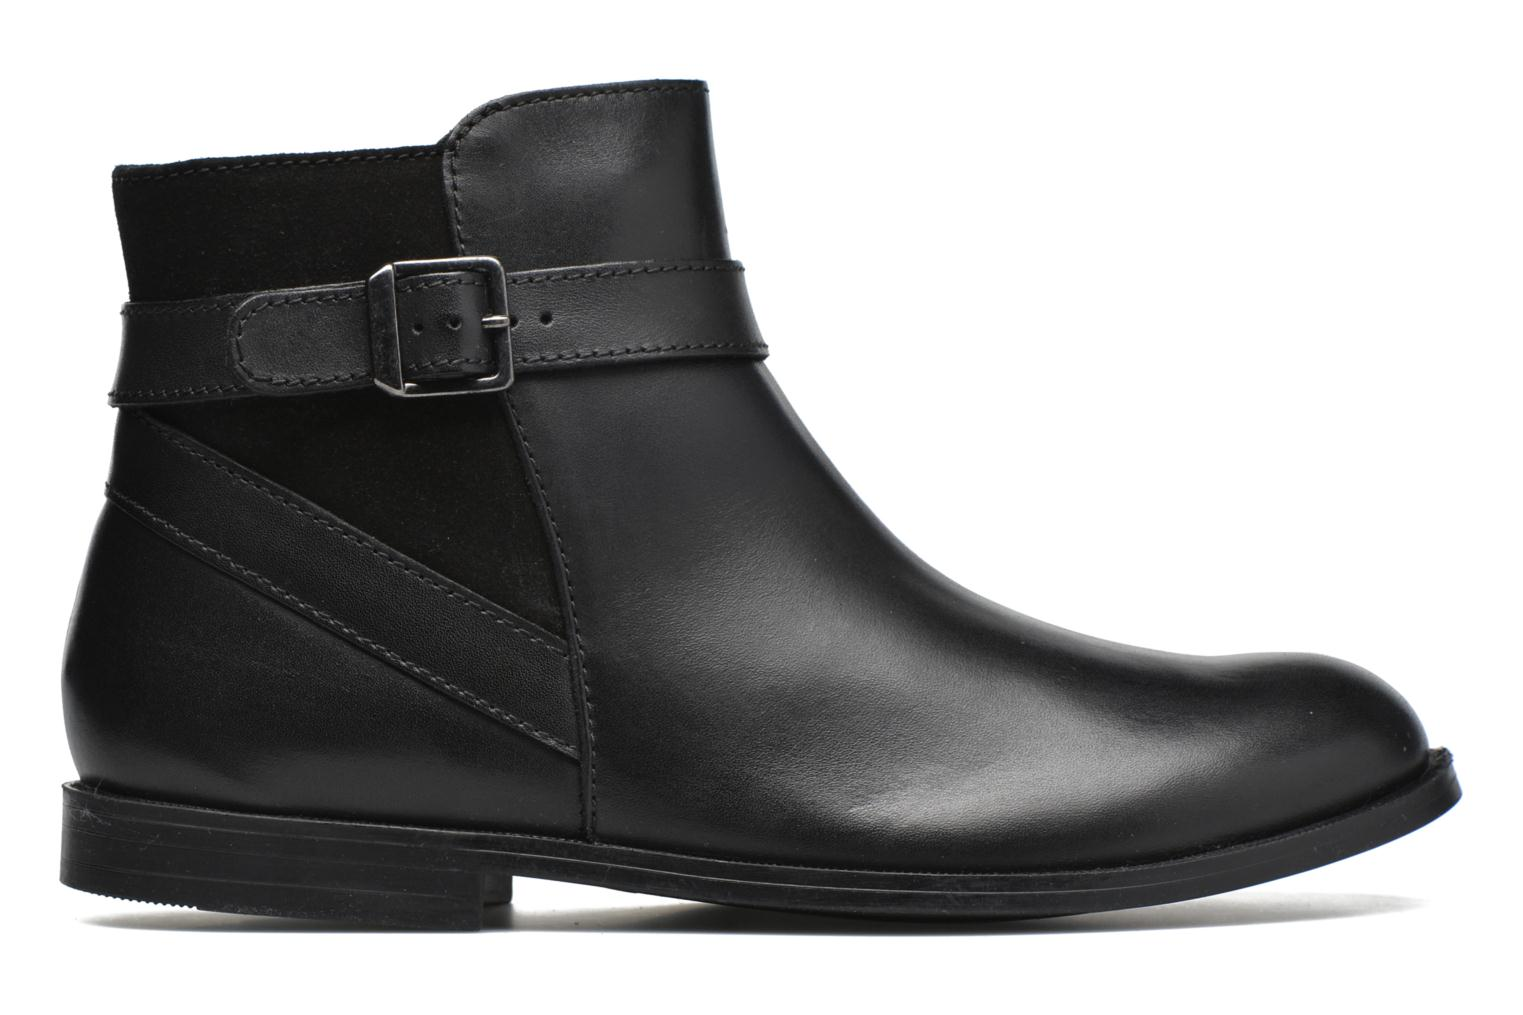 Imogen Black leather/suede